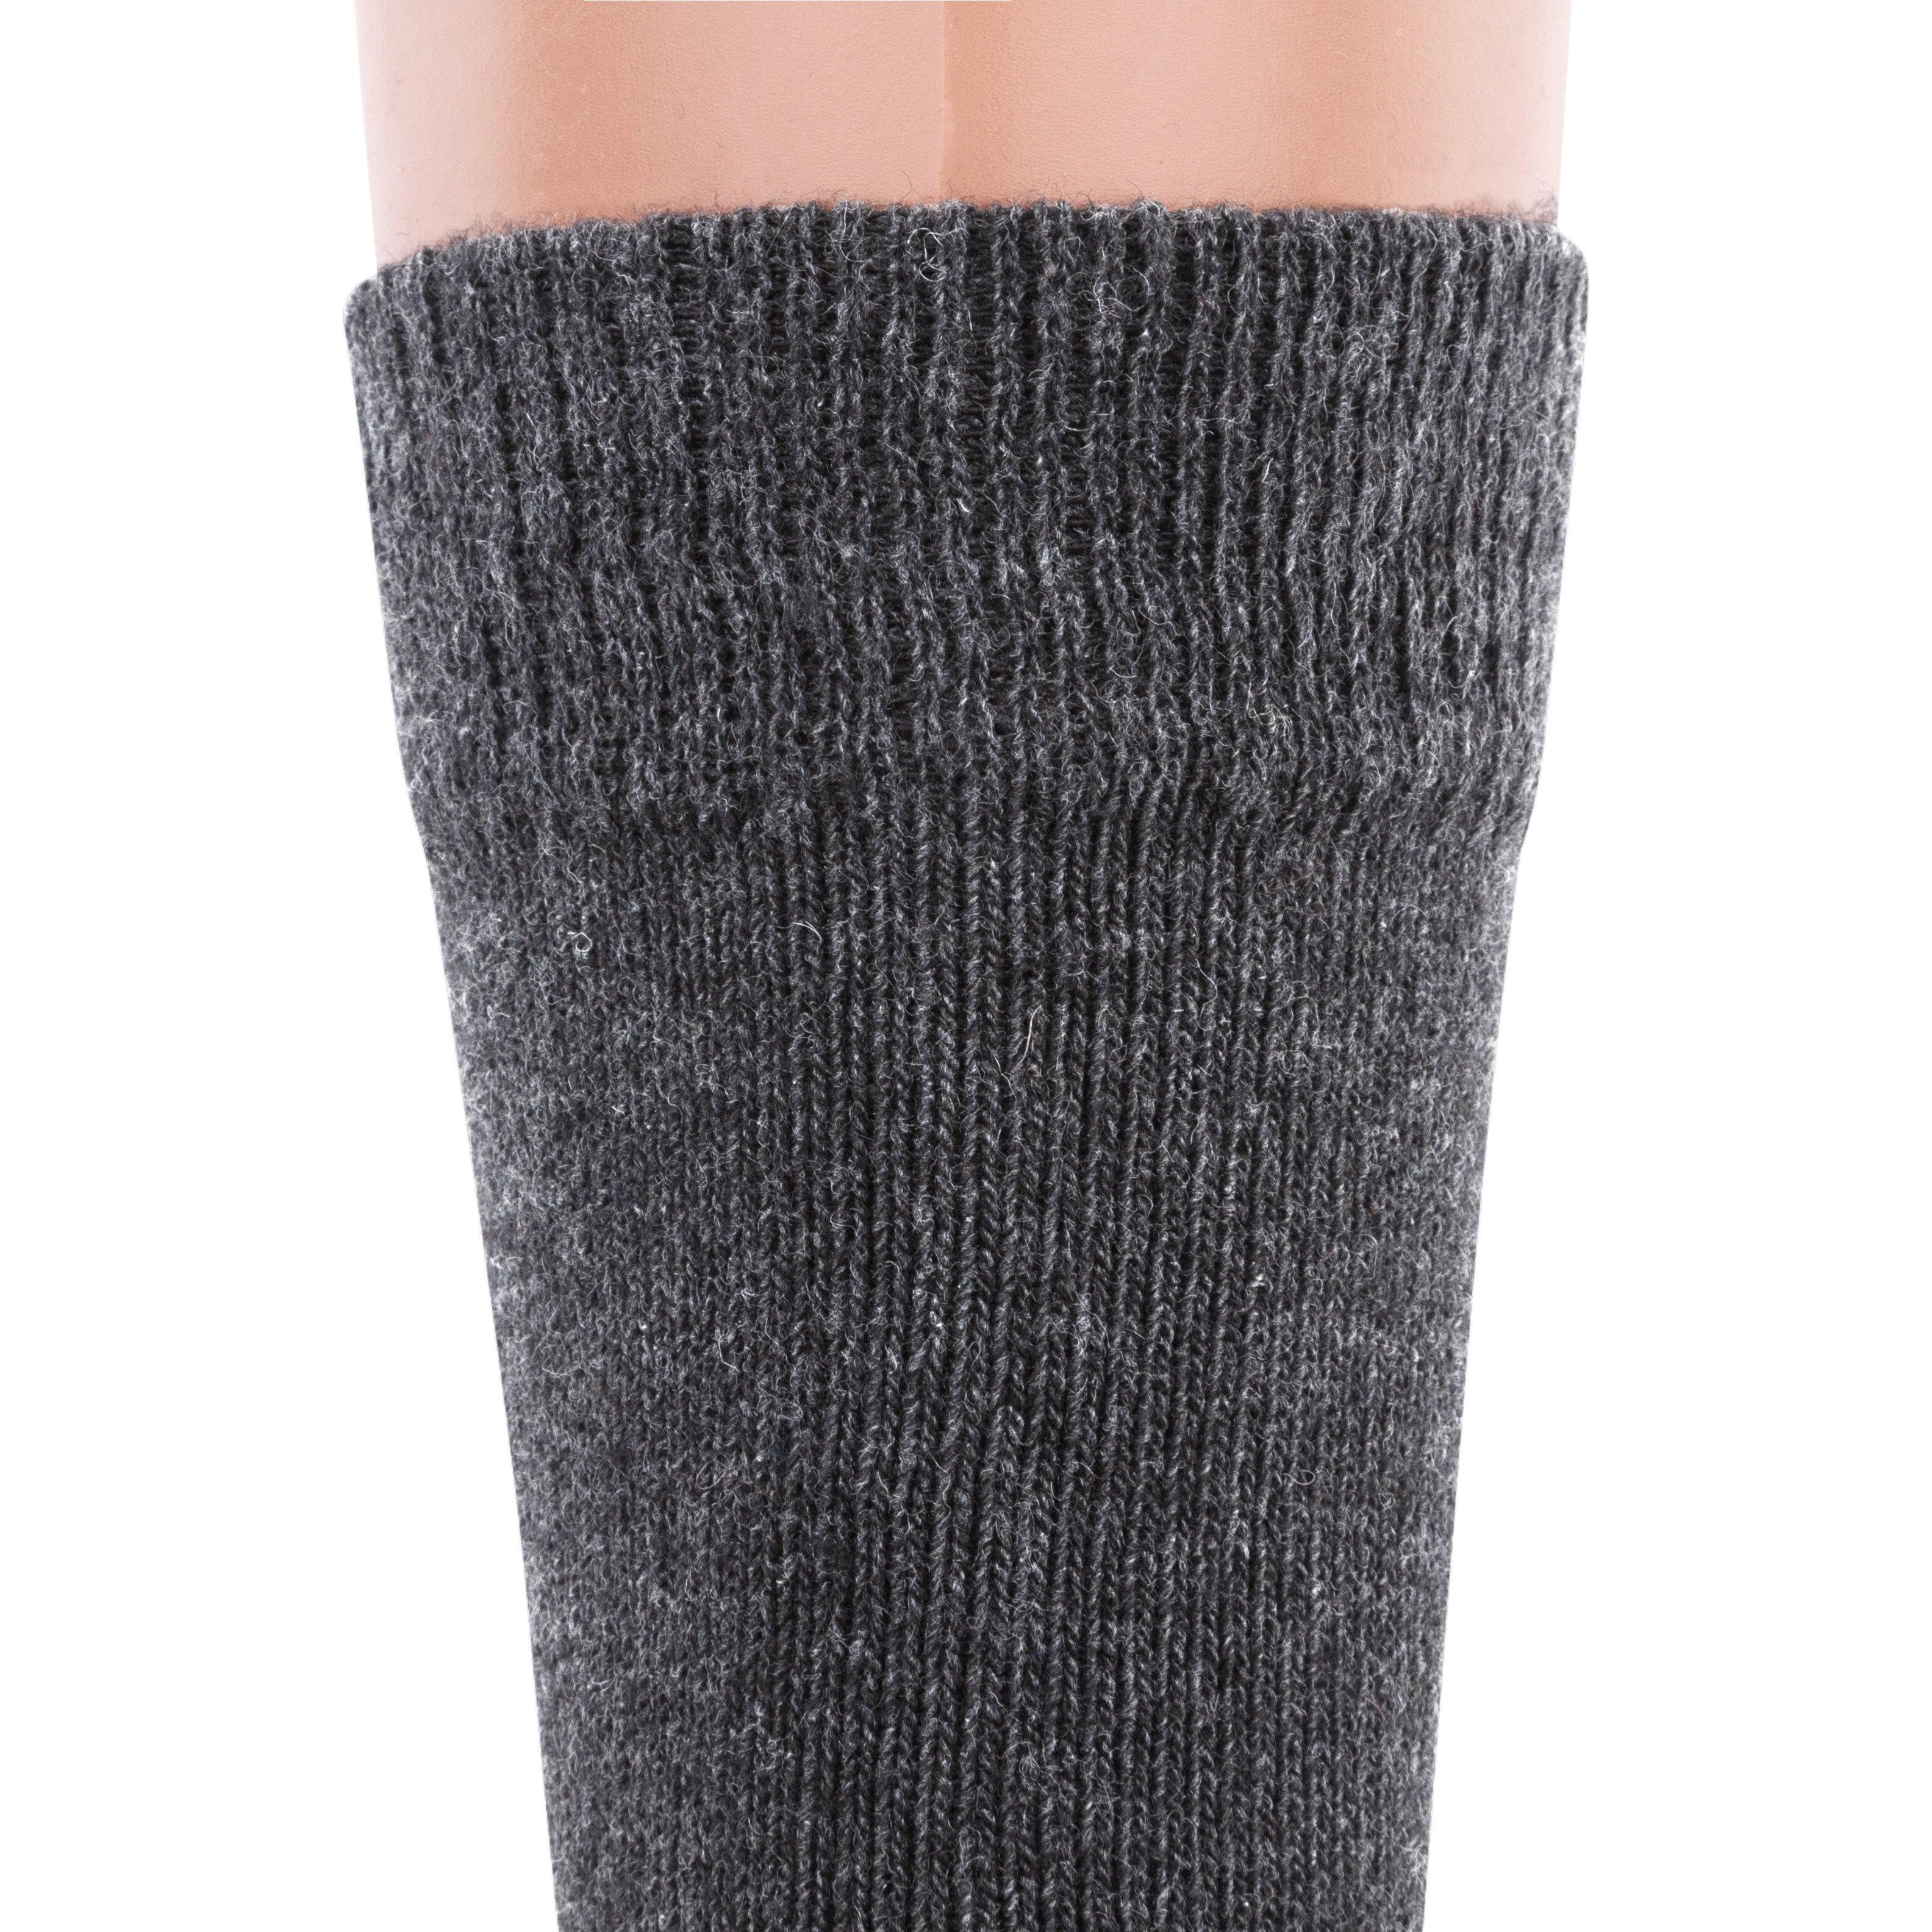 Air Wool Socks, Merino Wool Organic Cotton Thermal Heated Yarn Dress Sox, 2 pair (Grey)